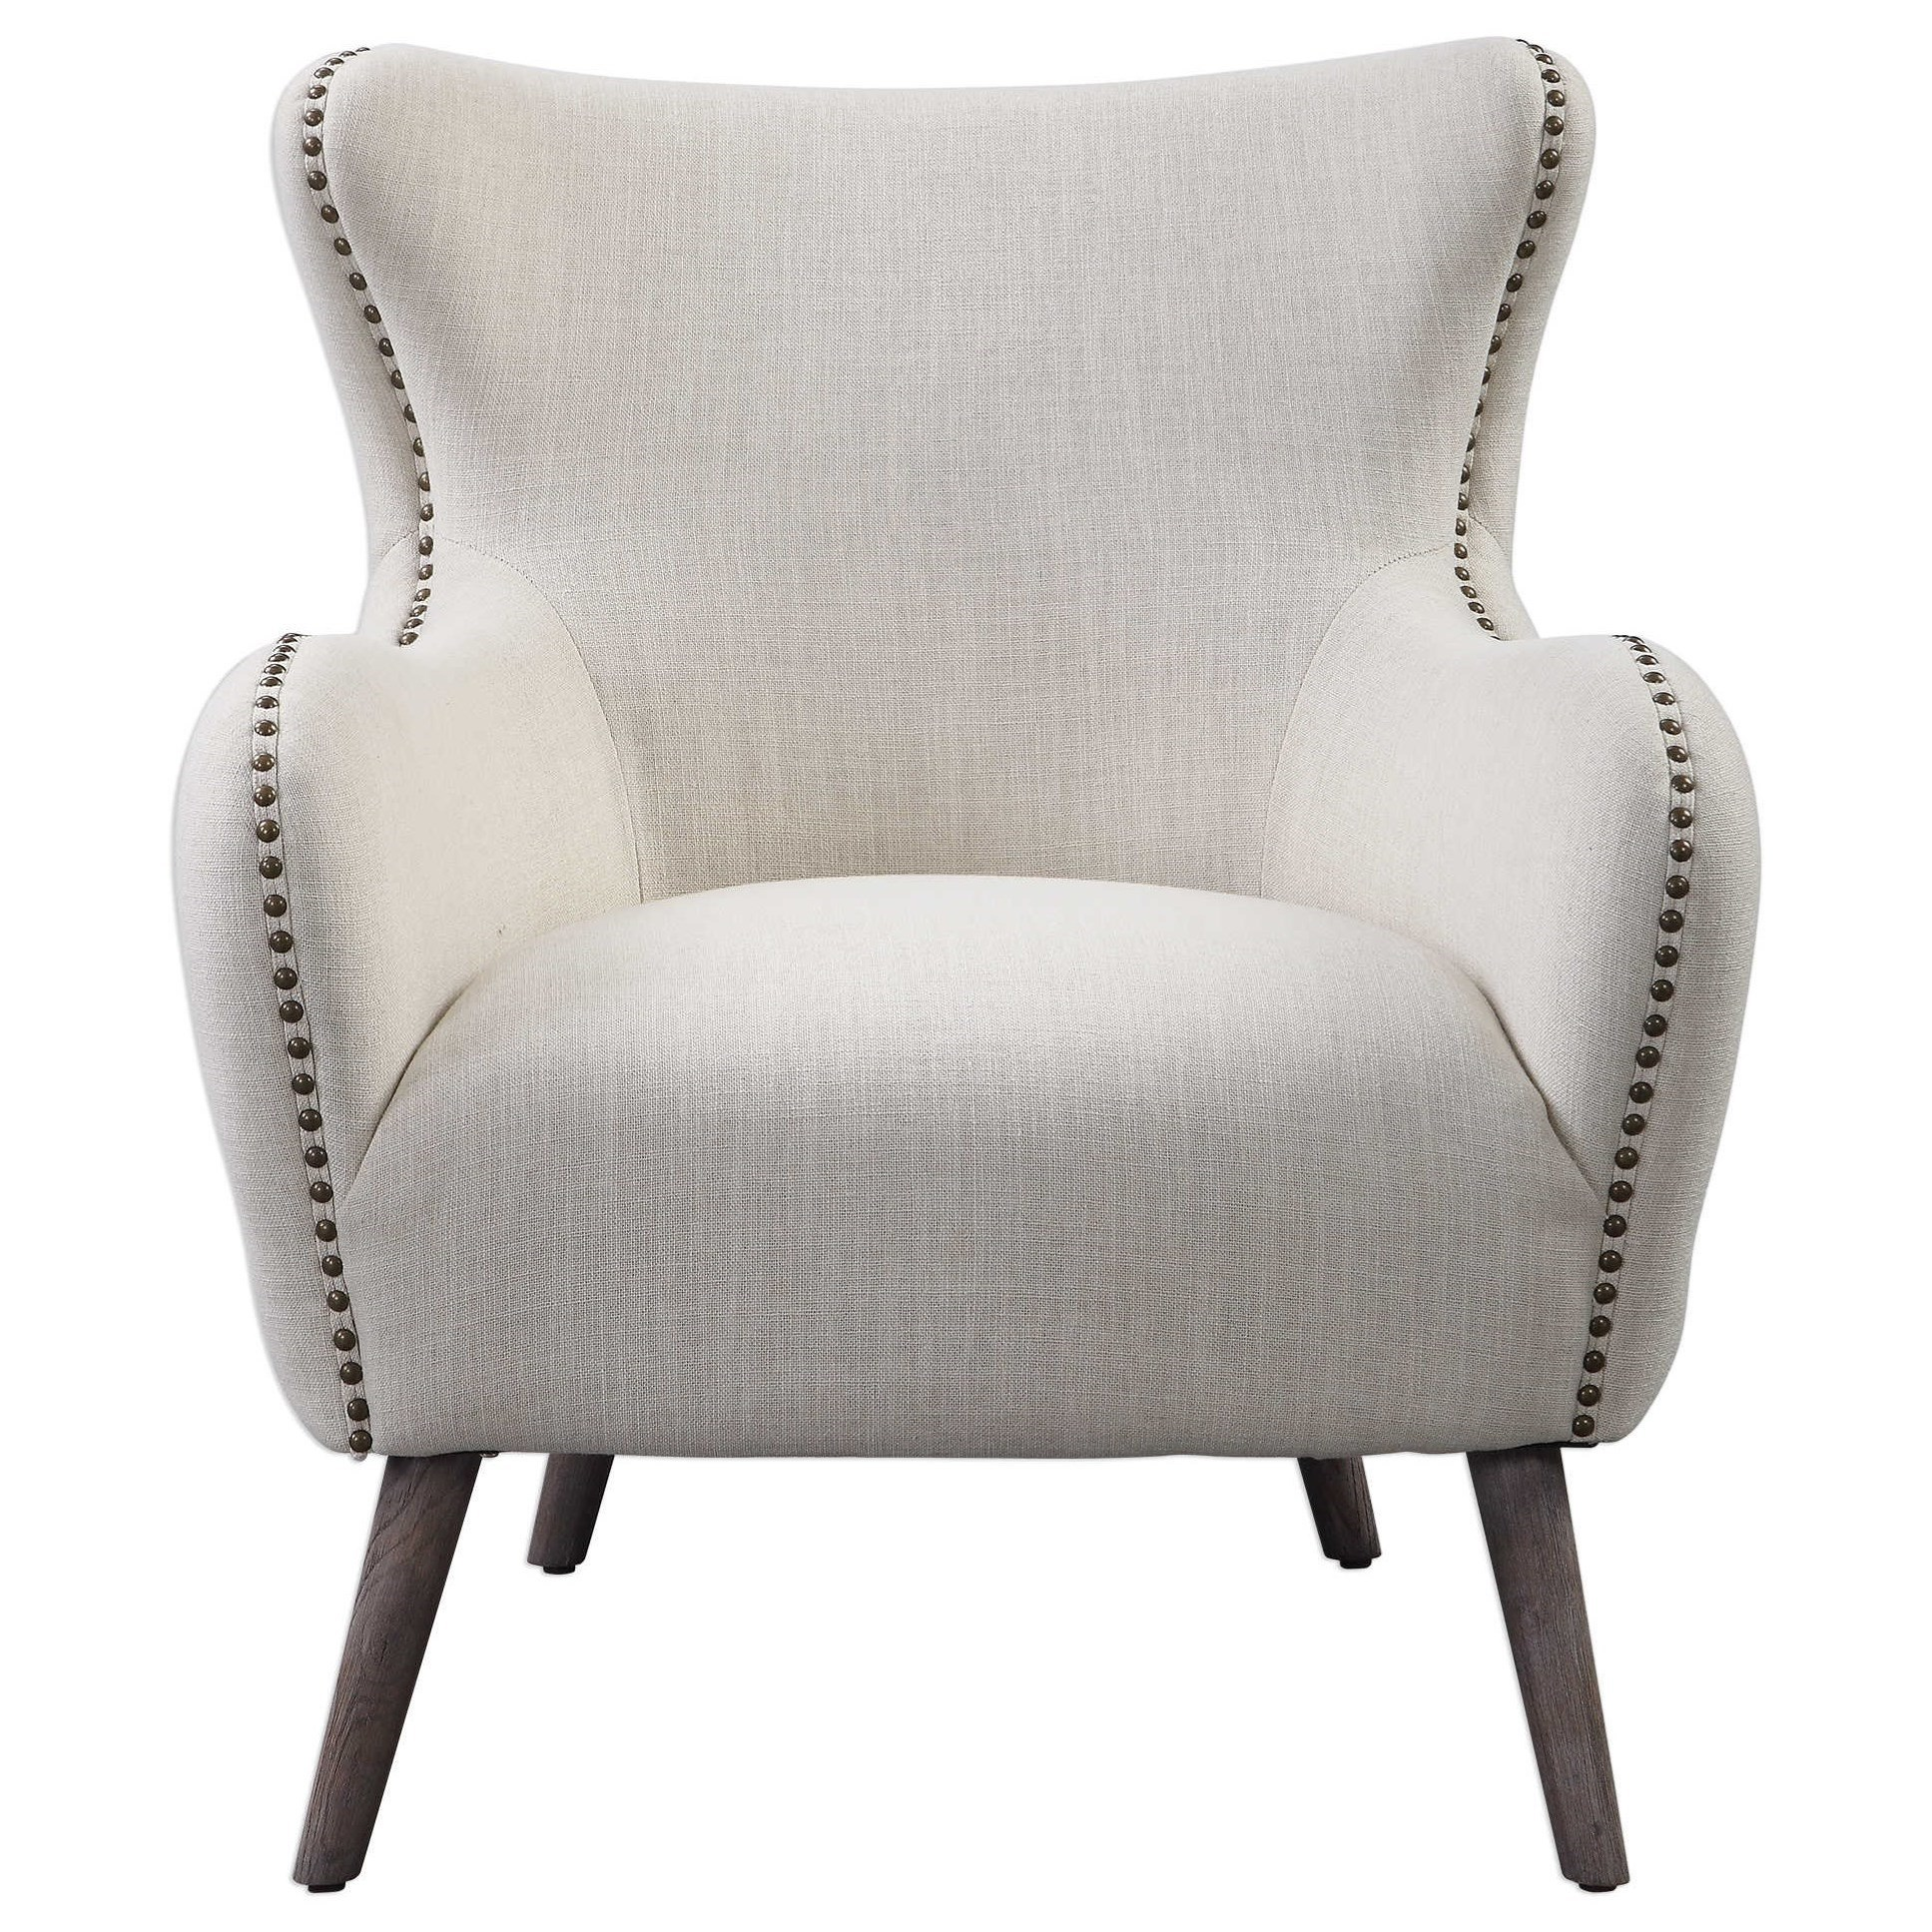 Accent Furniture - Accent Chairs Donya Cream Accent Chair by Uttermost at O'Dunk & O'Bright Furniture